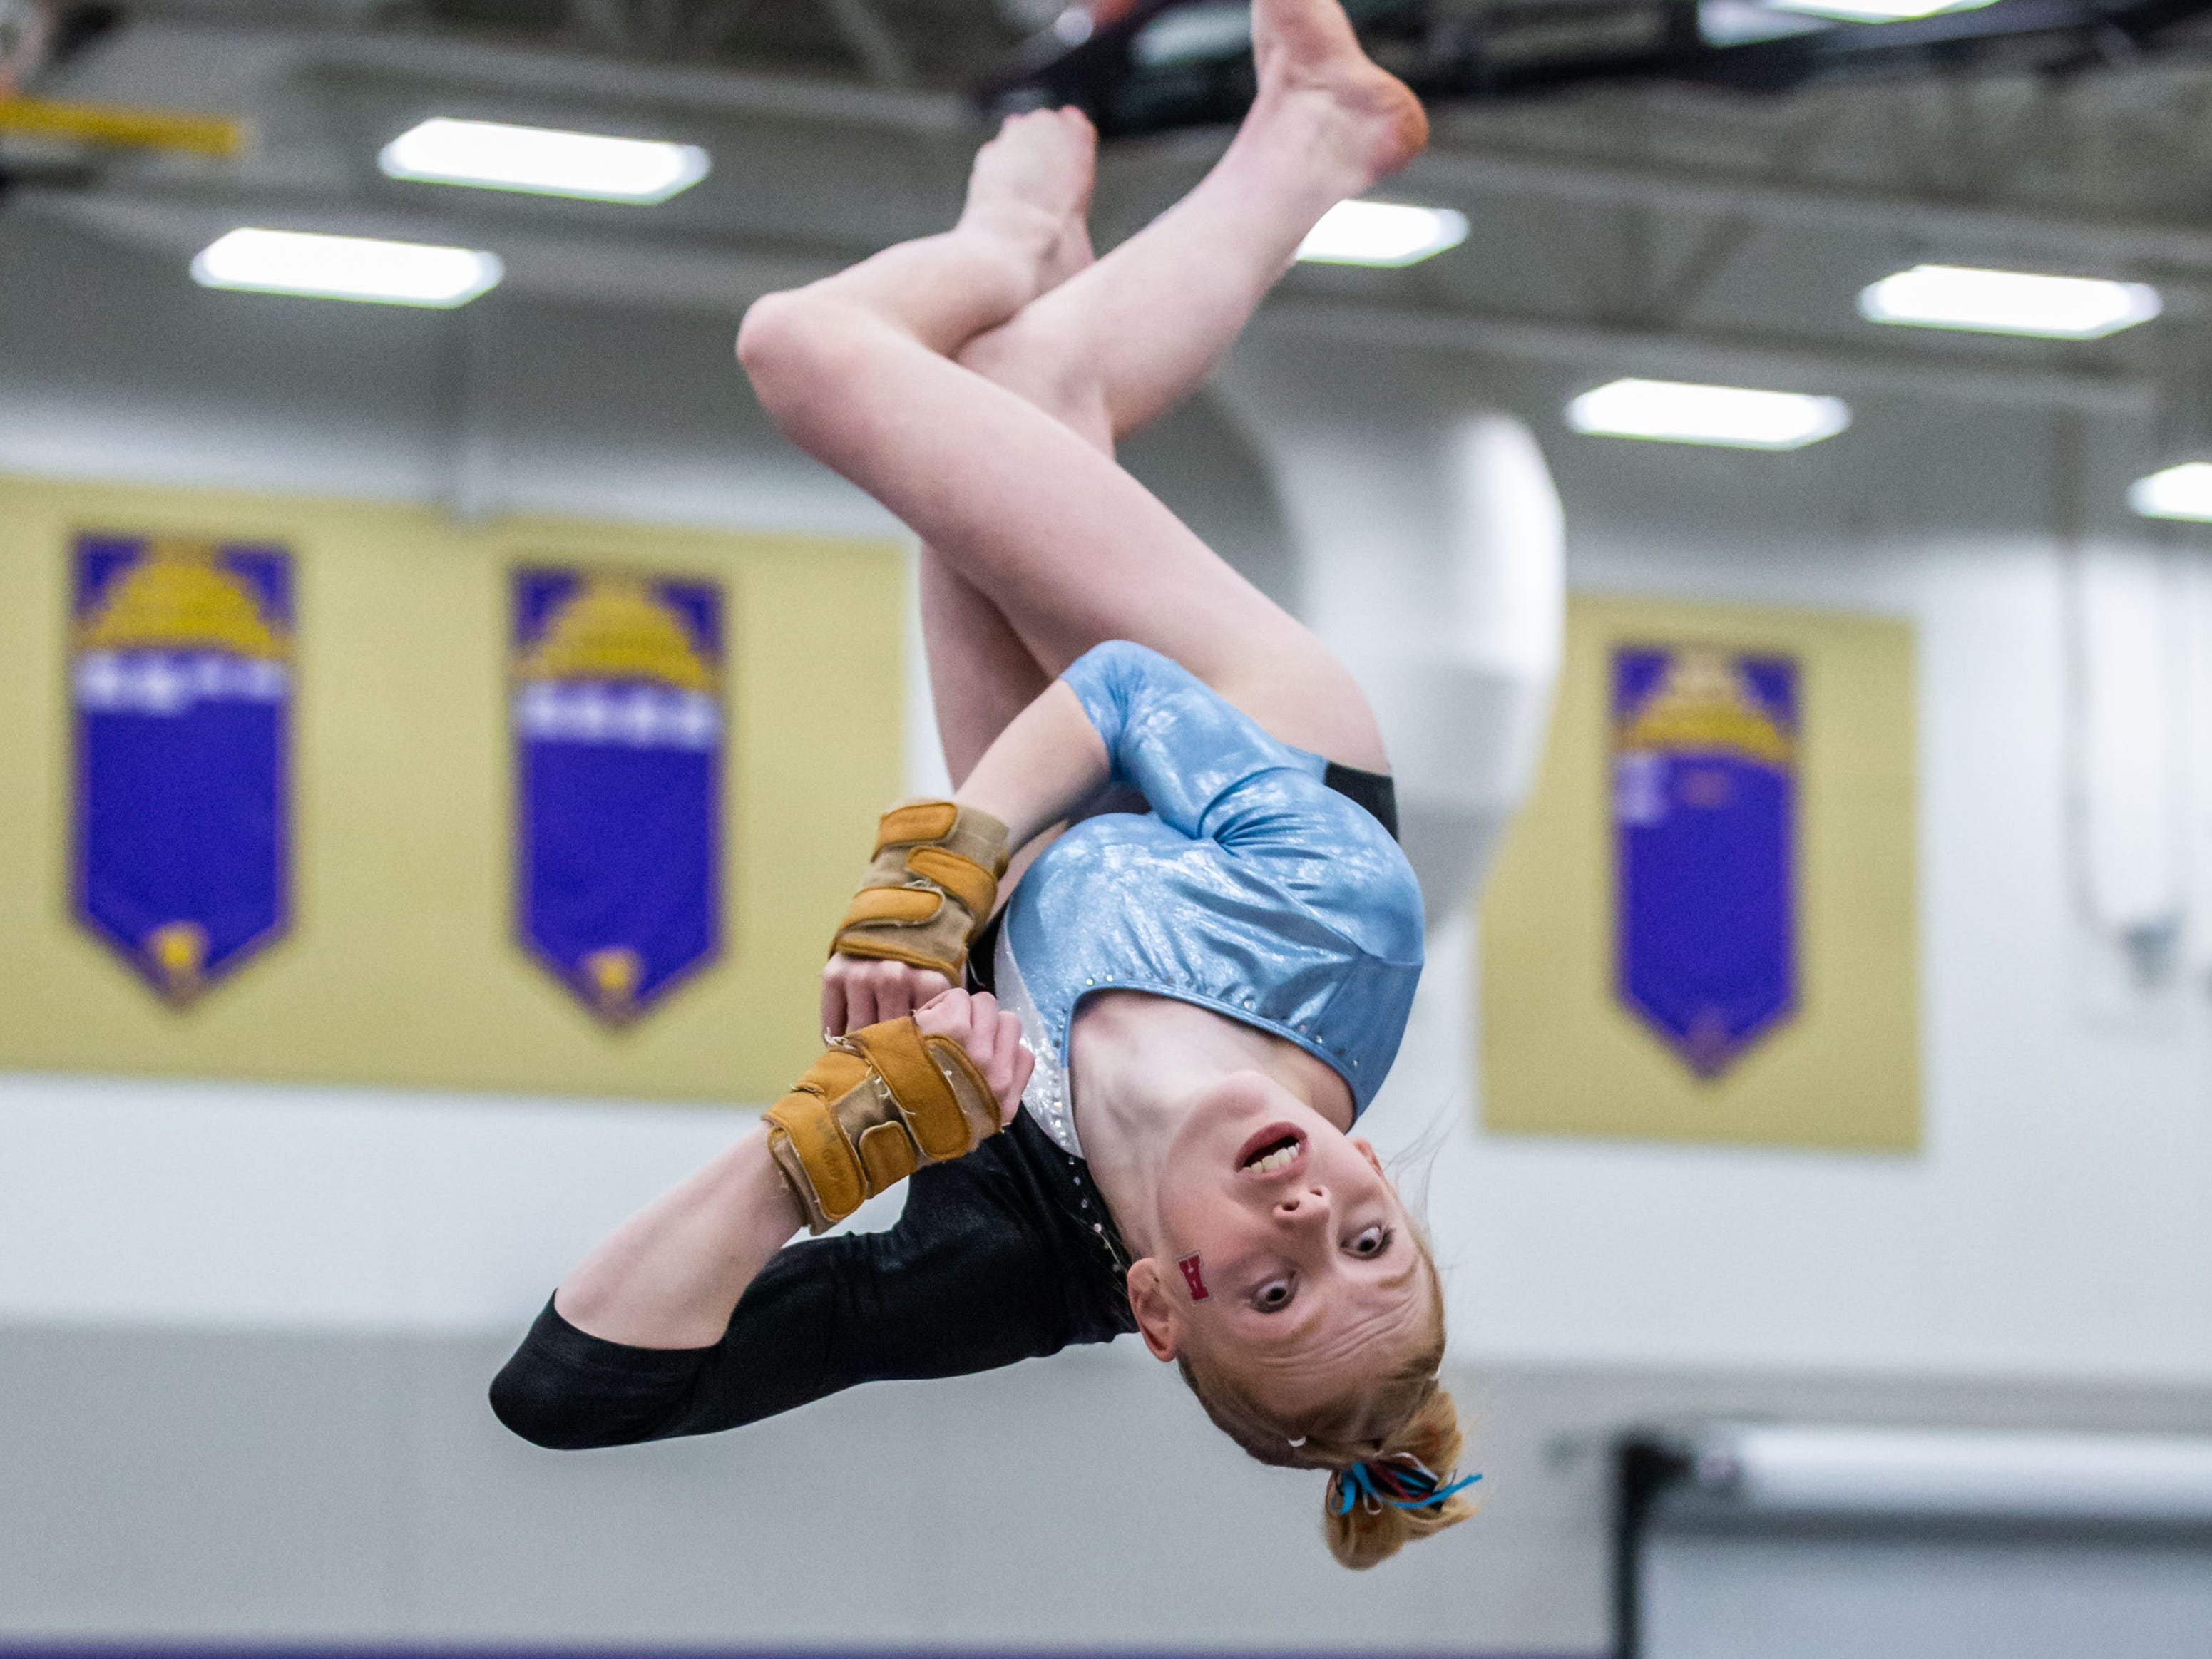 Arrowhead gymnast Nina Morrison dismounts off the beam during the Division 1 sectional at Oconomowoc on Friday, Feb. 22, 2019. Morrison finished third in the all around, placing second on the floor and fourth on the bars.